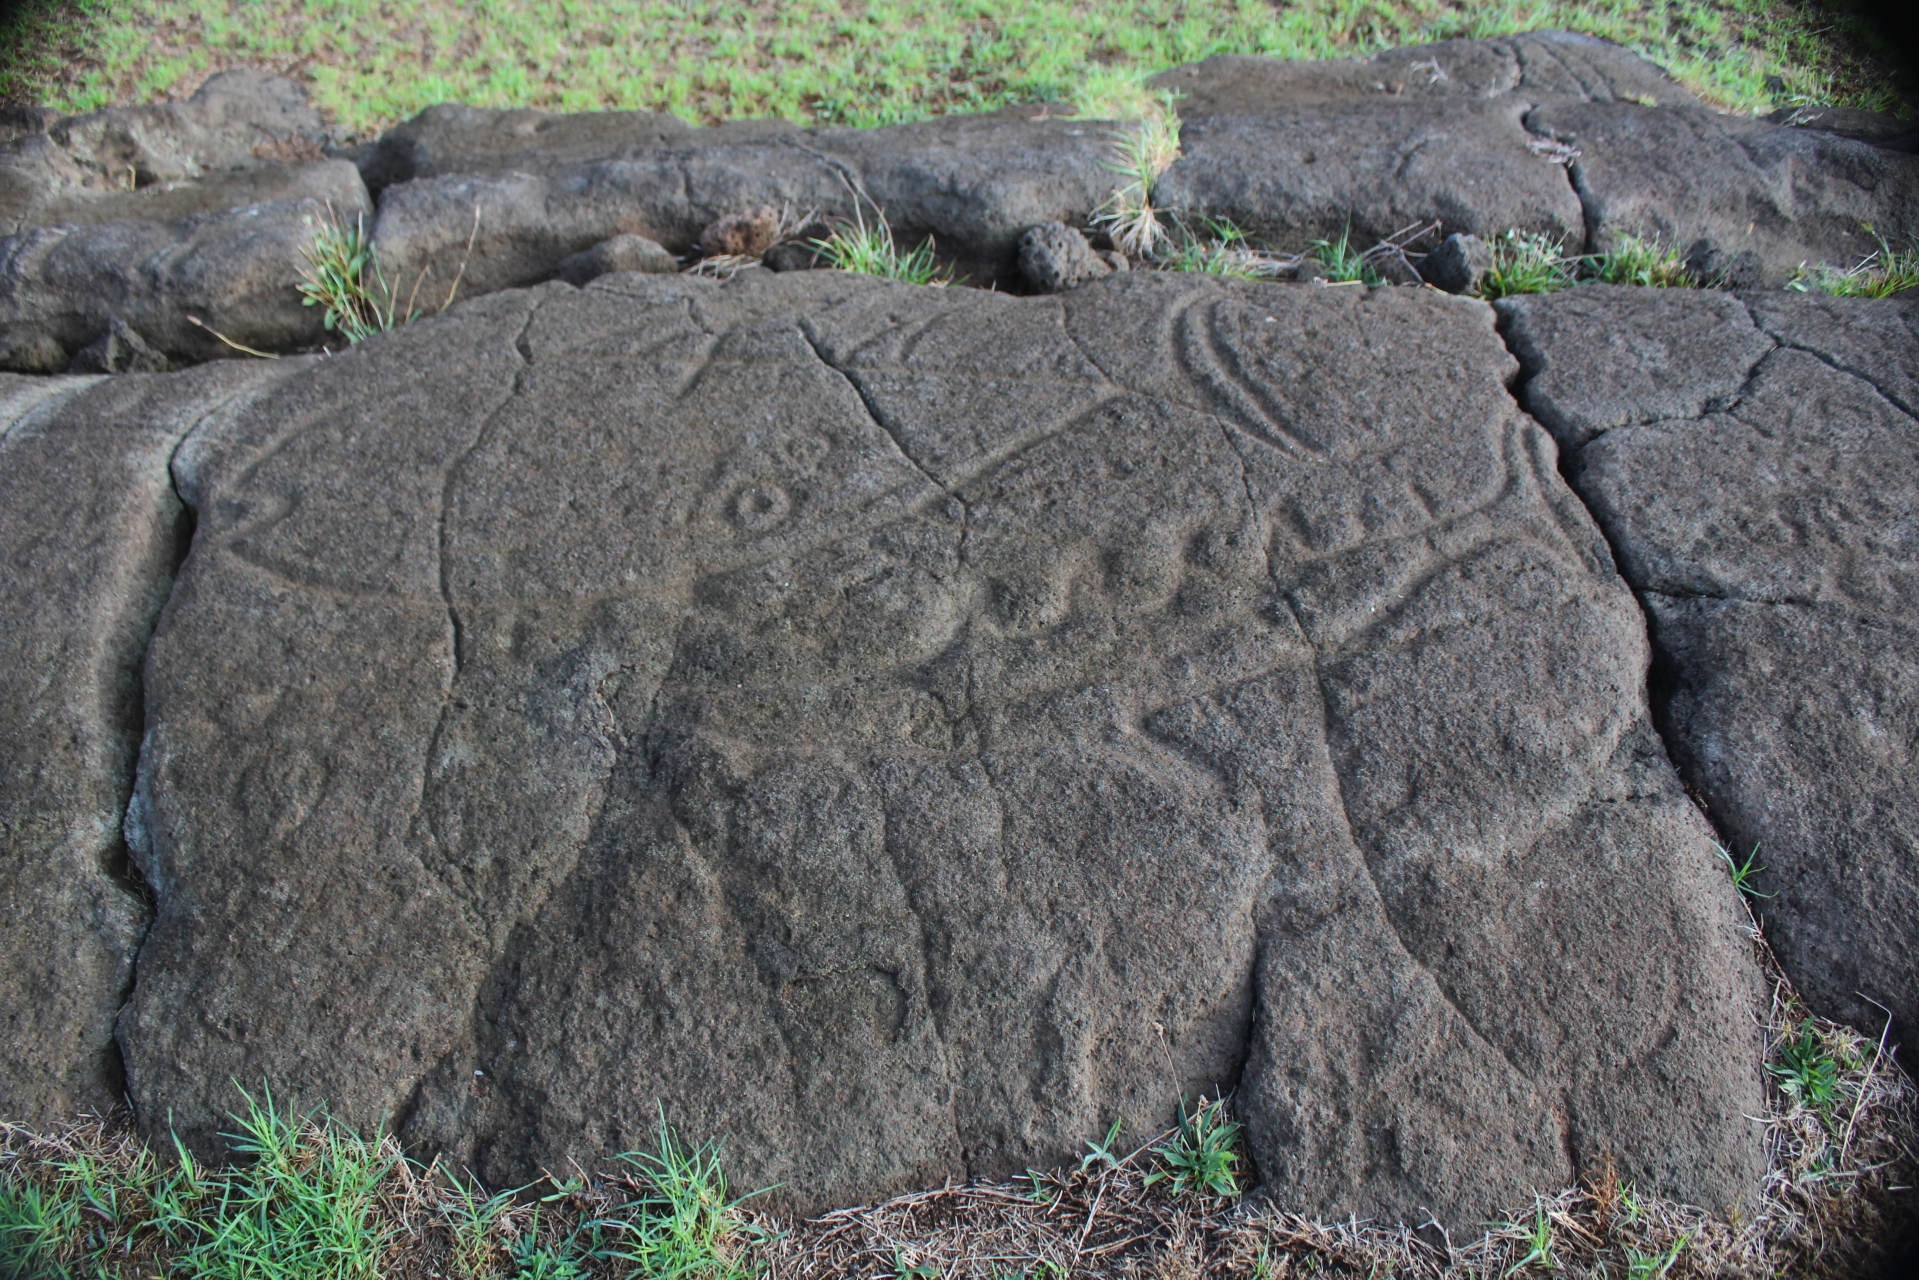 Papa Vaka: Tuna and Shark petroglyphs